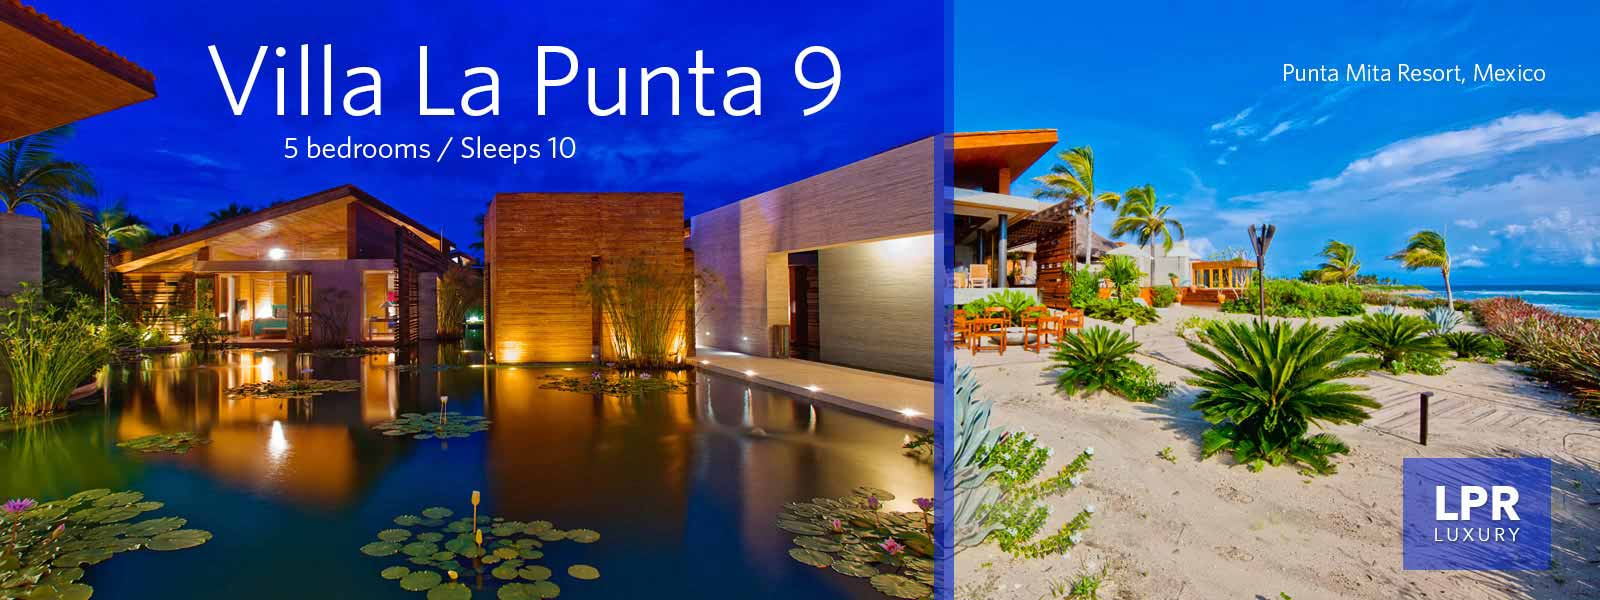 Villa La Punta 9 - Luxury Punta Mita Rentals and Real Estate - Vallarta | Nayarit, Mexico